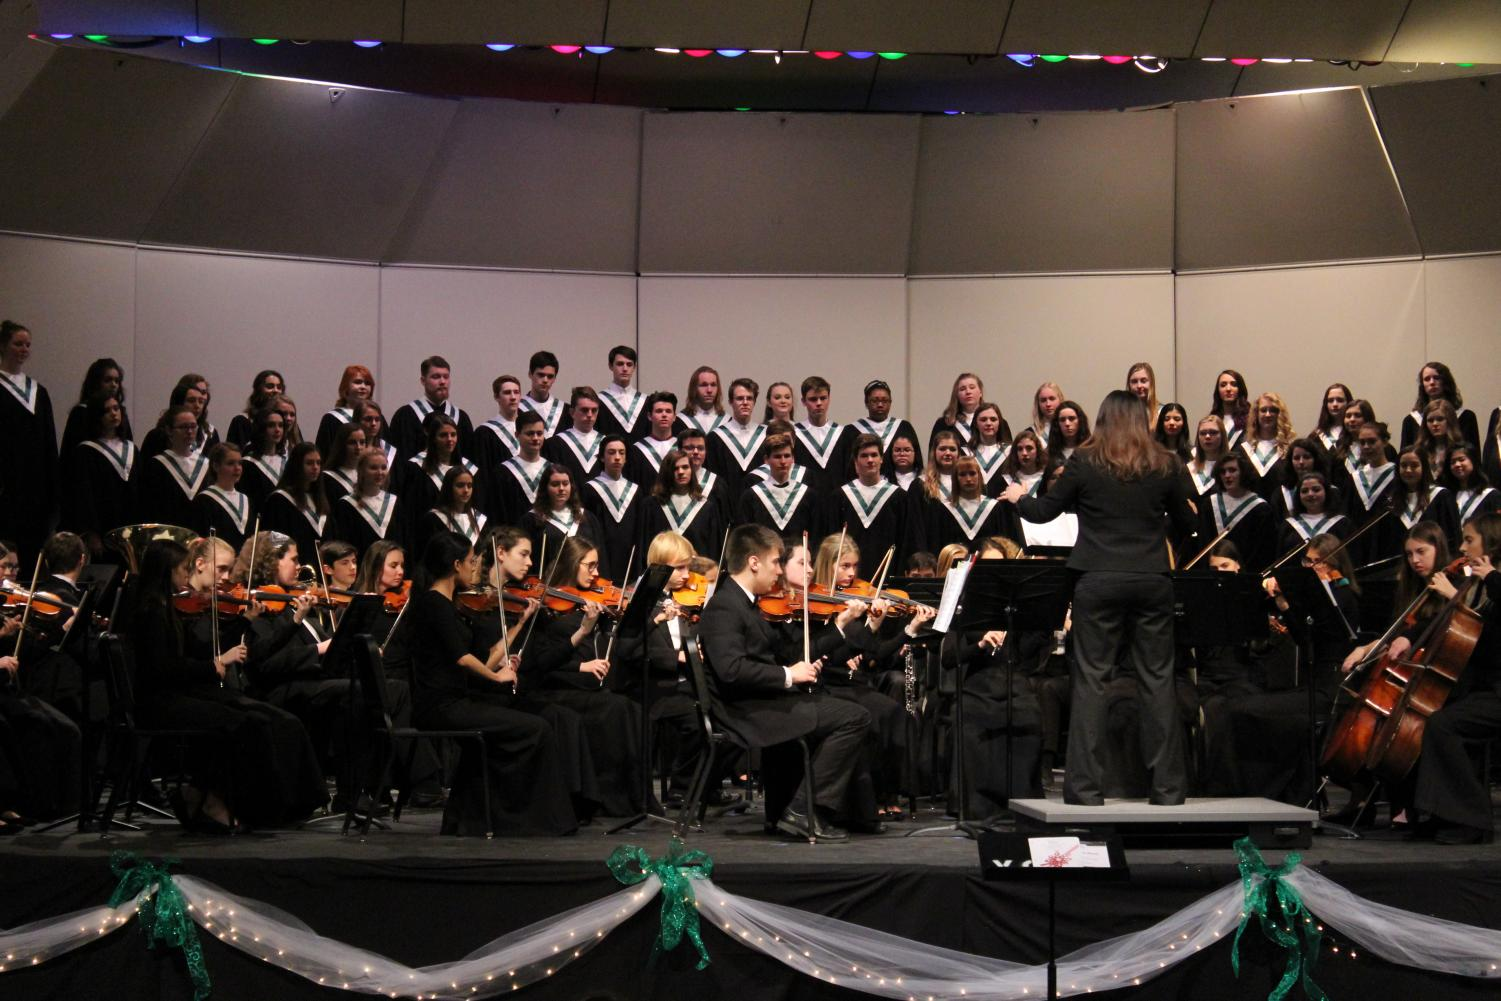 Choir director Rebecca Marianetti conducts the full orchestra along as the choir sings the finale of the night,